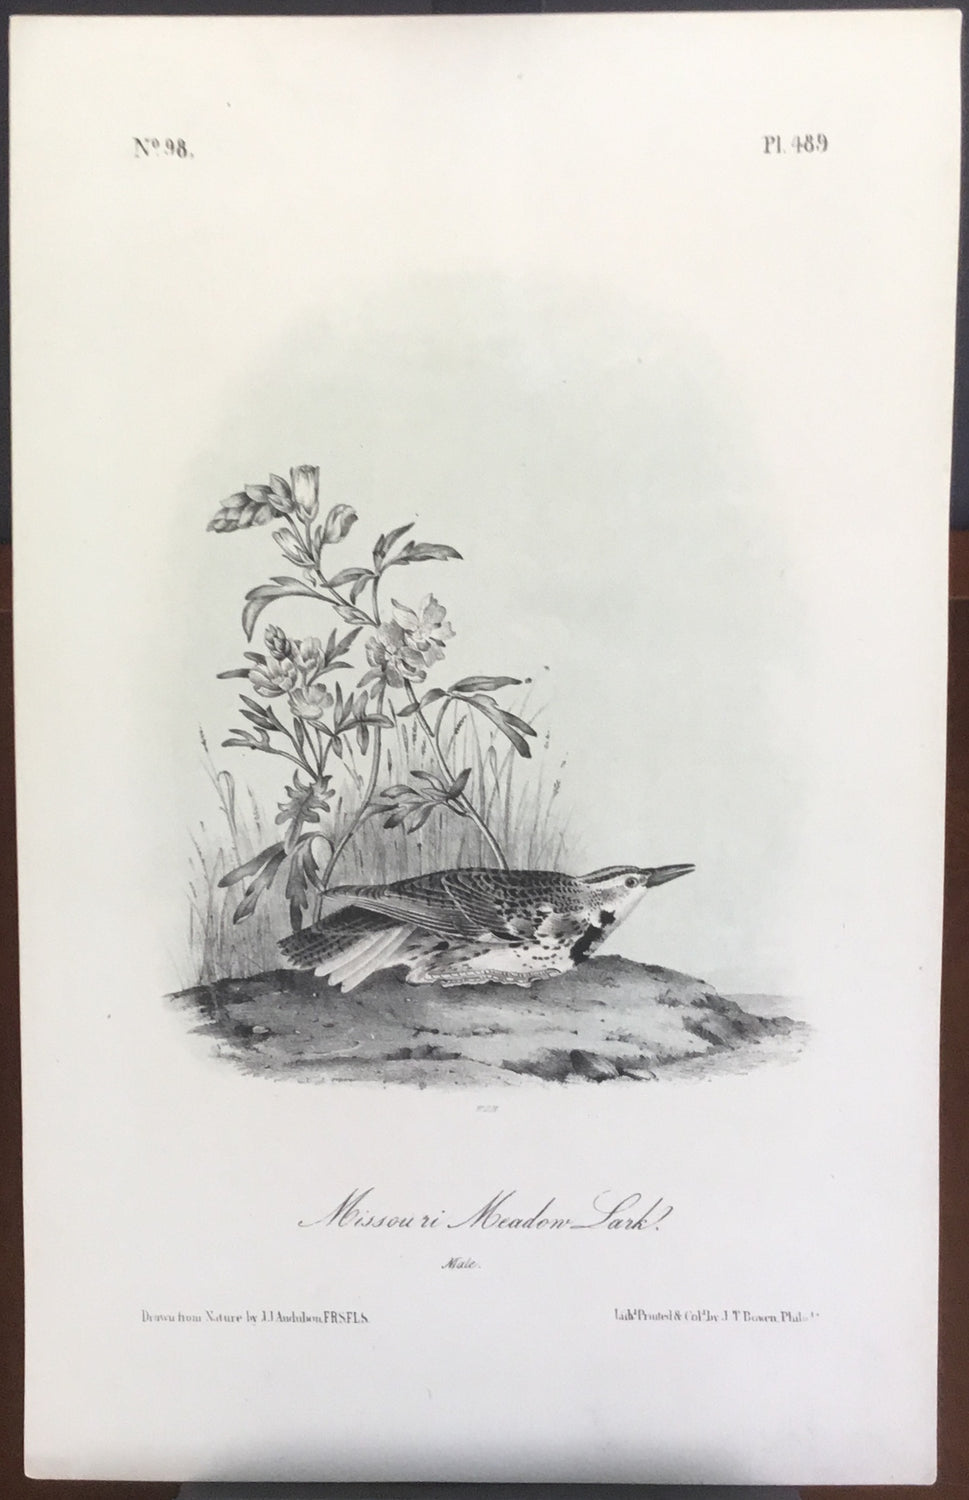 Audubon Octavo Missouri Meadow Lark, plate 489, uncolored test sheet, 7 x 11